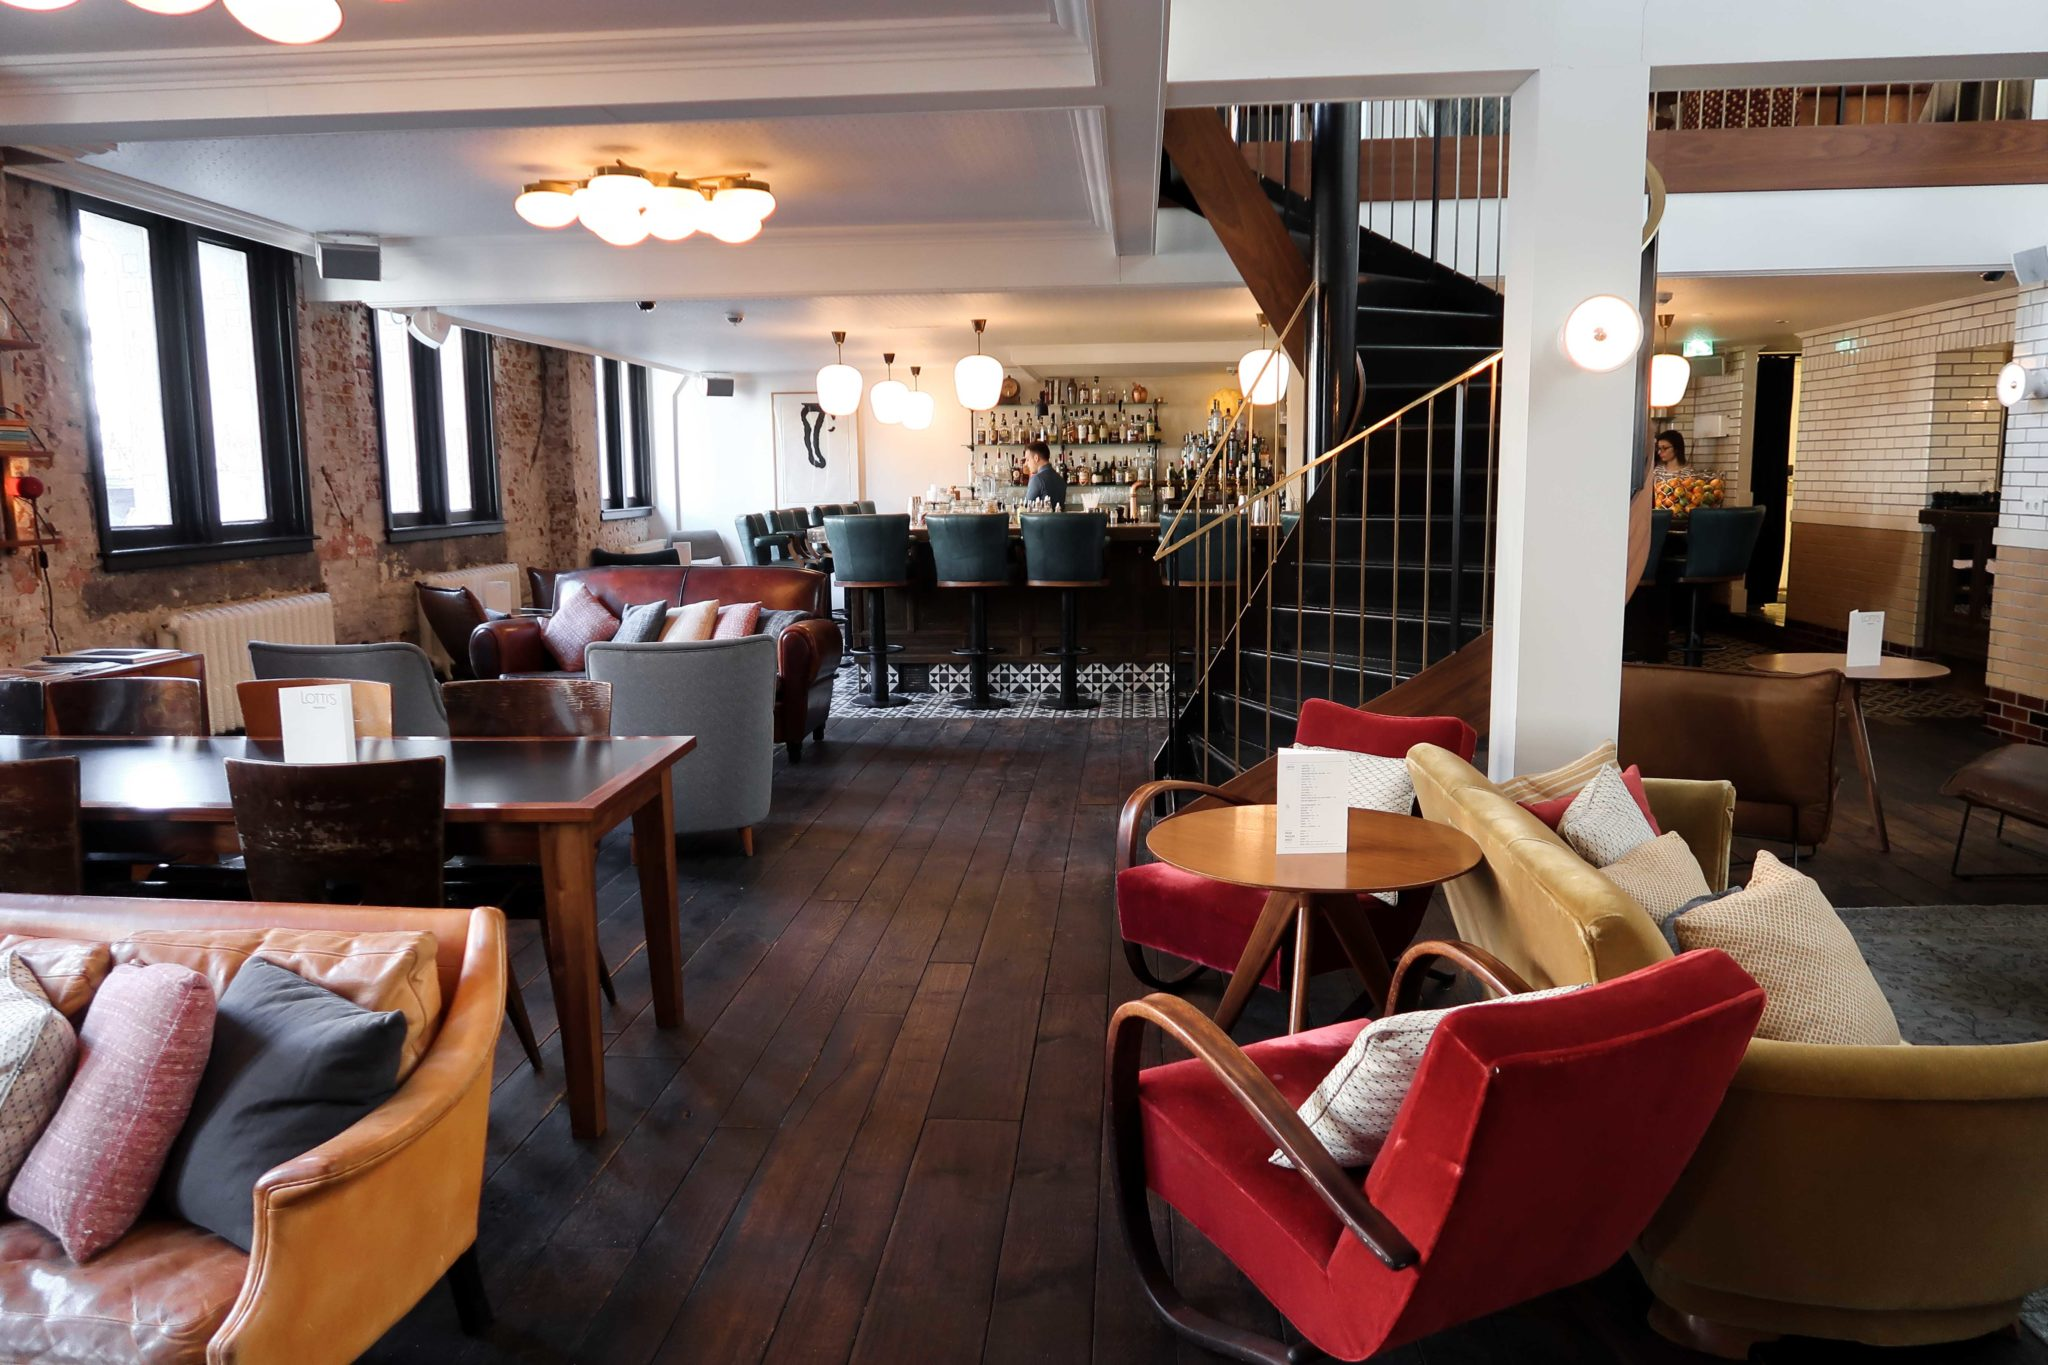 Hoxton hotel amsterdam maurice style travel blog voyage